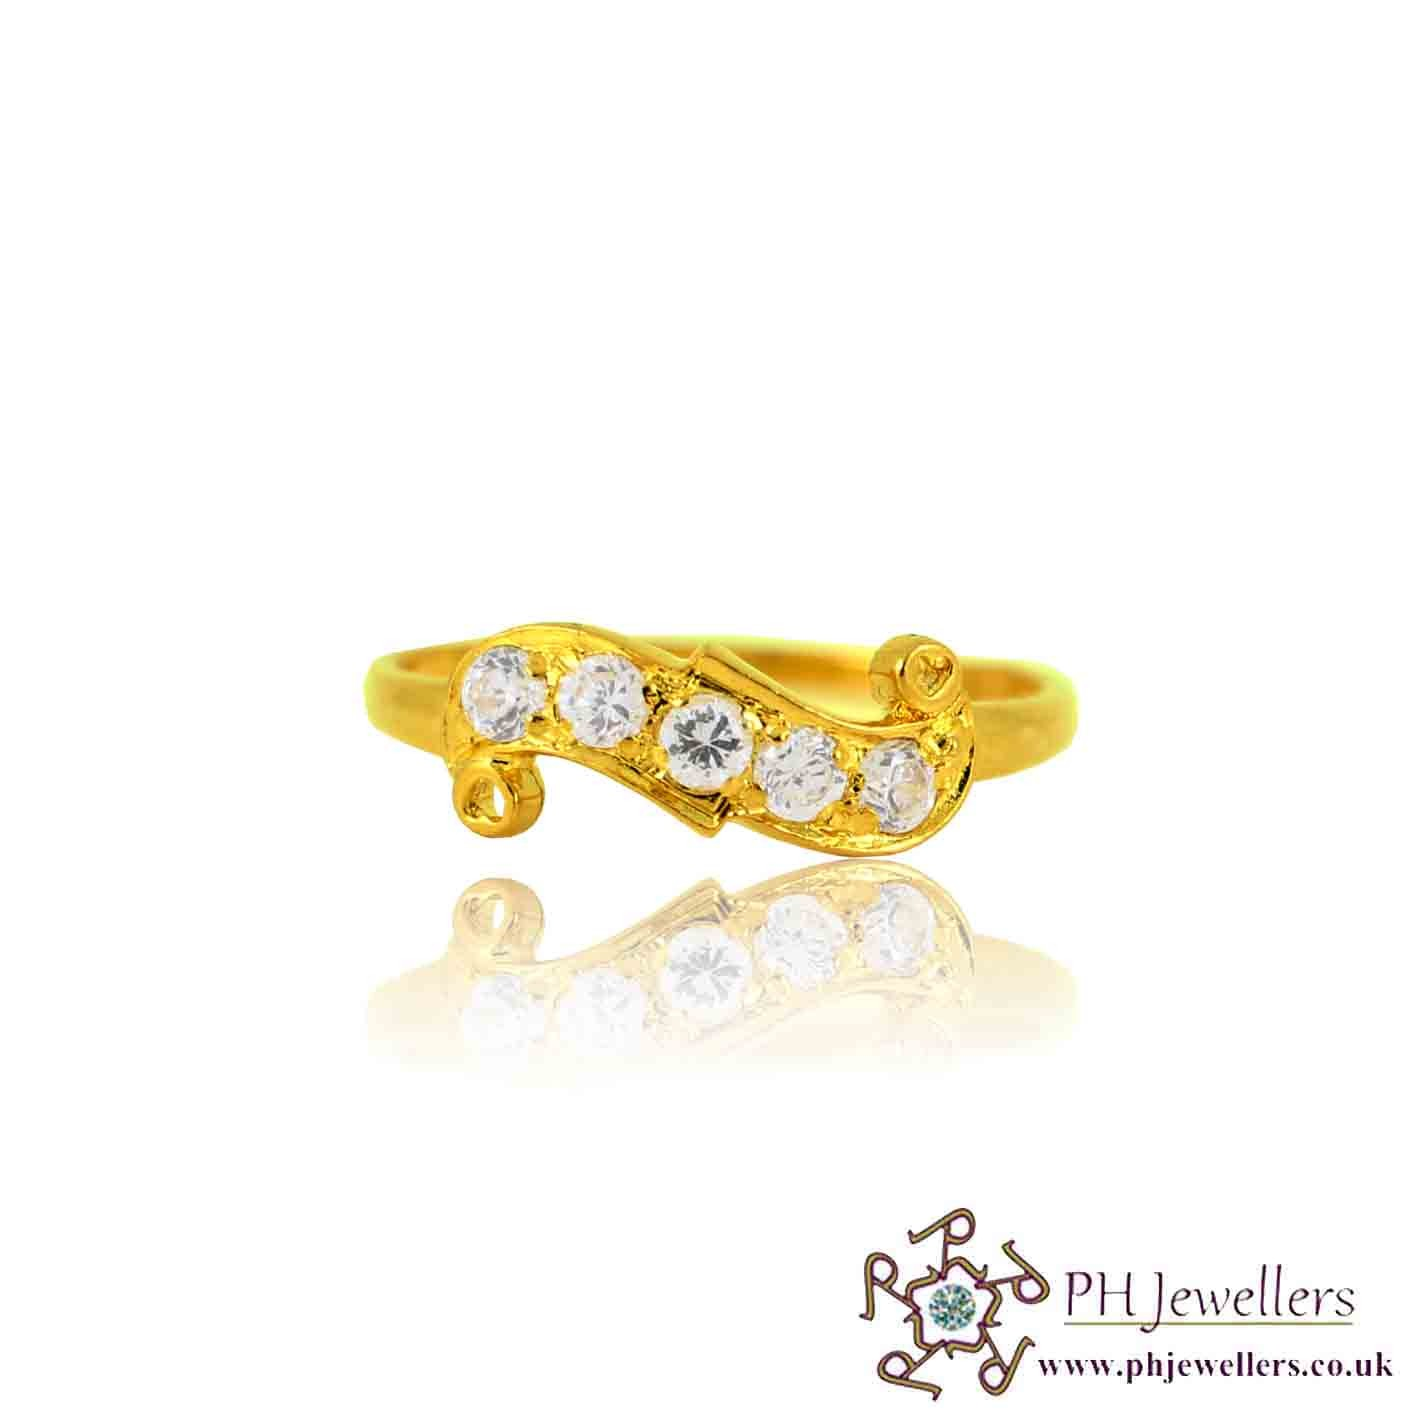 22ct 916 Yellow Gold Hallmark Ring CZ Size P  SR134